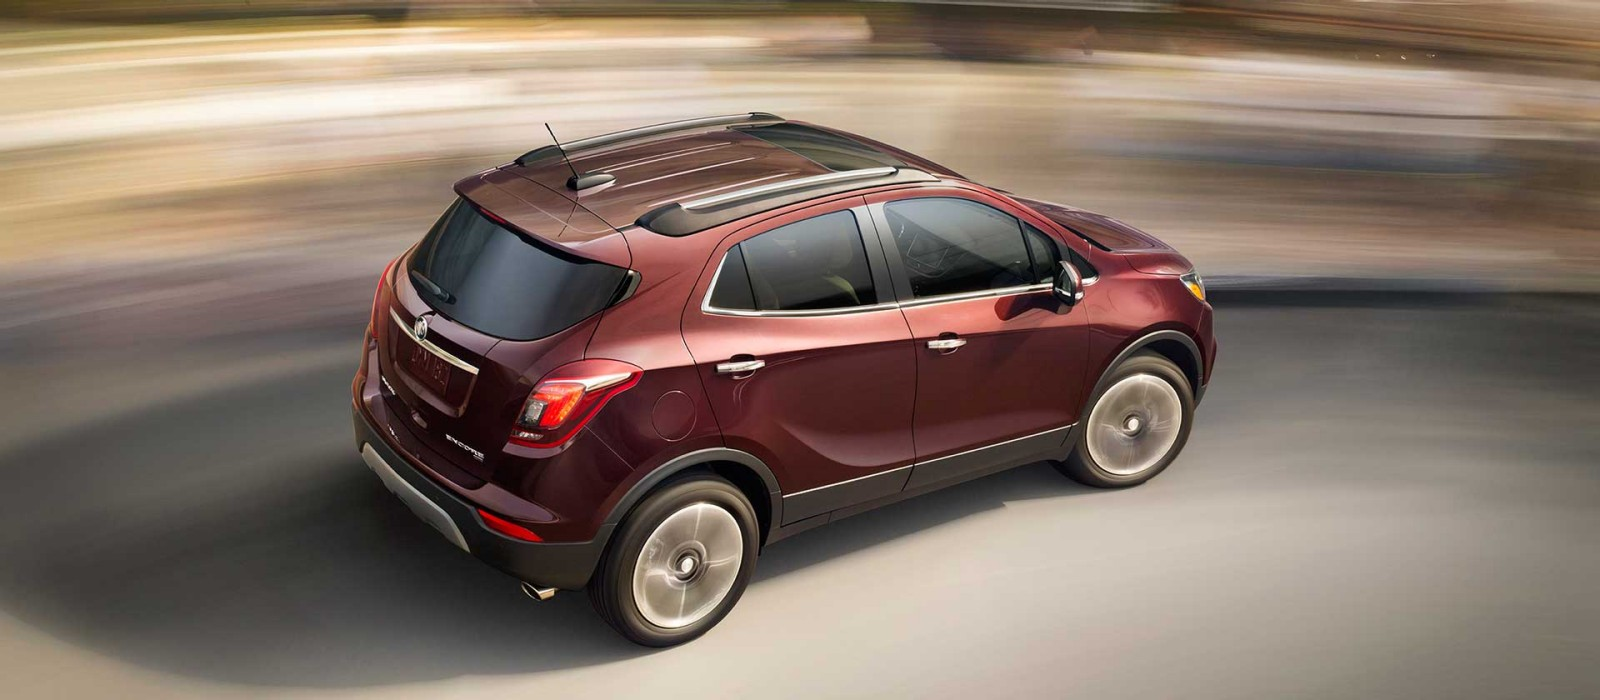 current enclave ontario img suv new and stage resize lease finance oem sale for oshawa offers item specials mm buick gal on